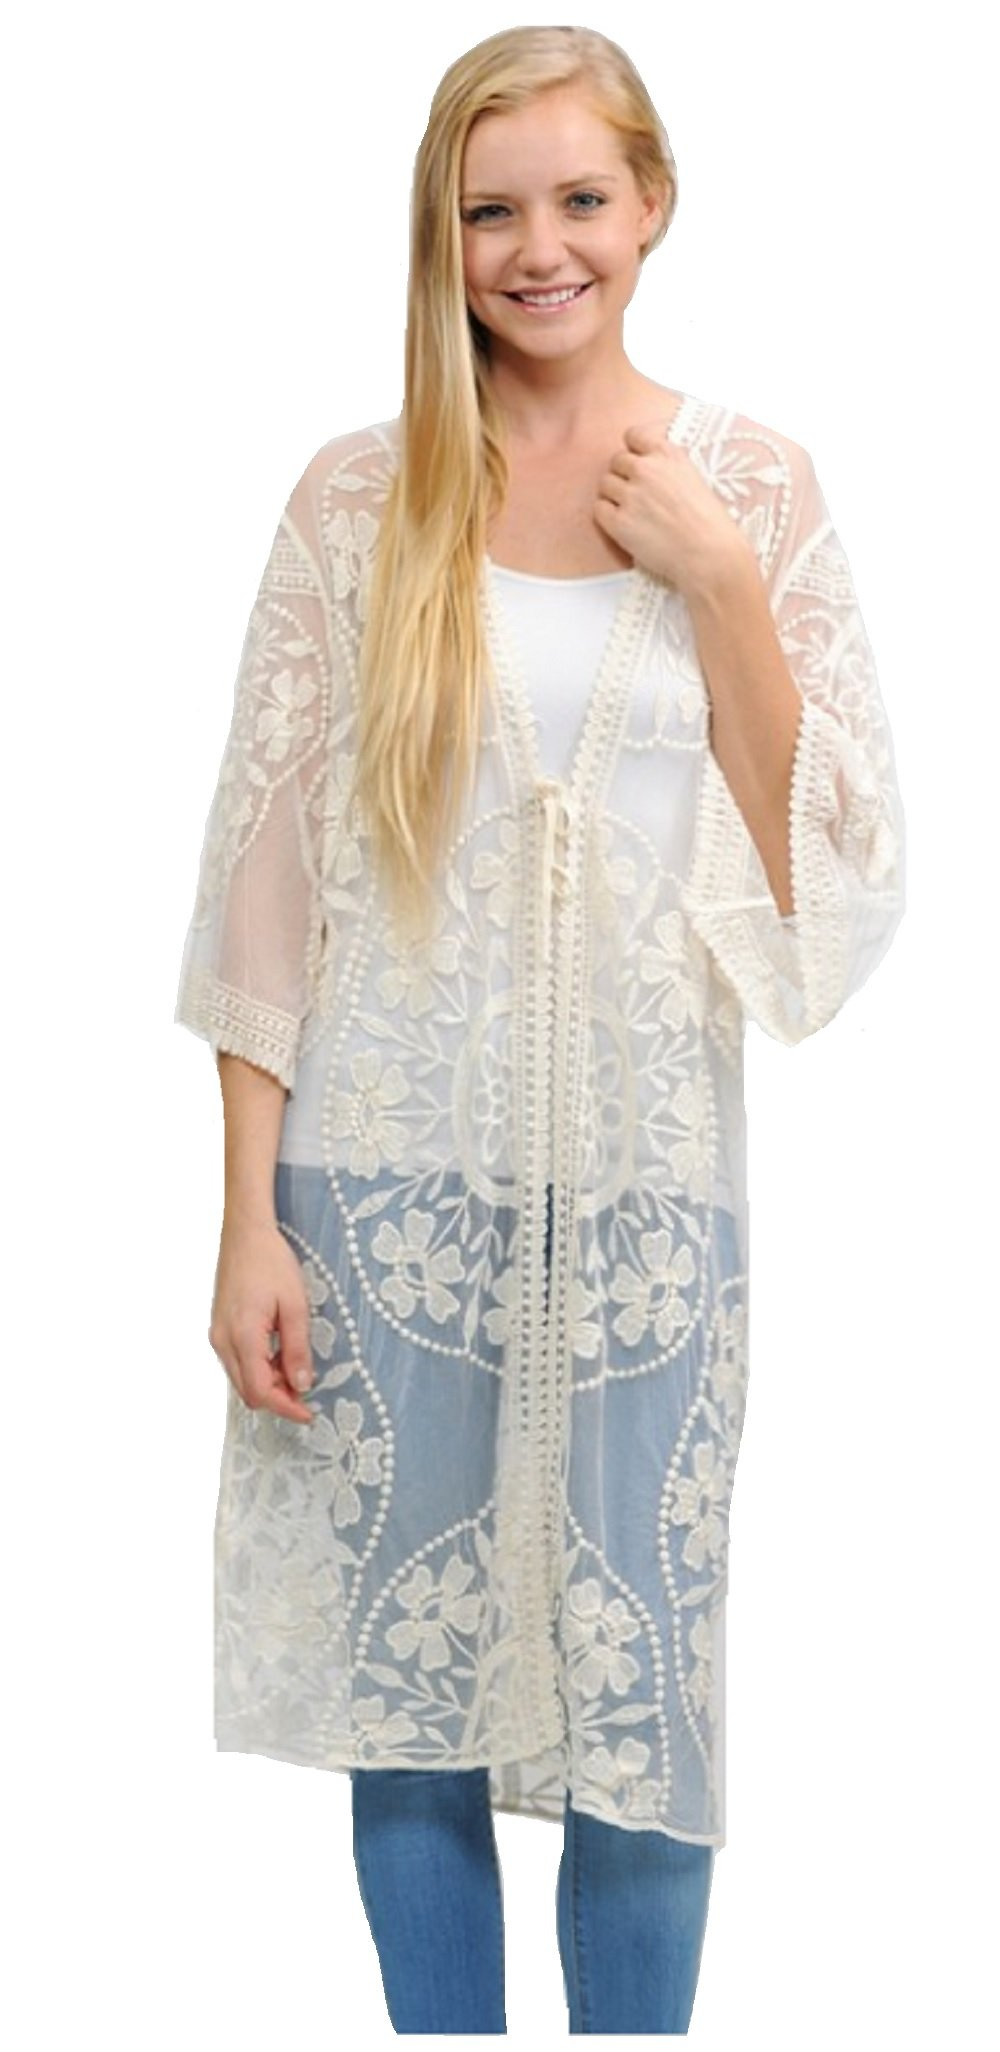 Love My Seamless Contemporary Fashion Long Crochet Lace Shrug Open Cardigan Duster Cover up Jacket (Ivory)